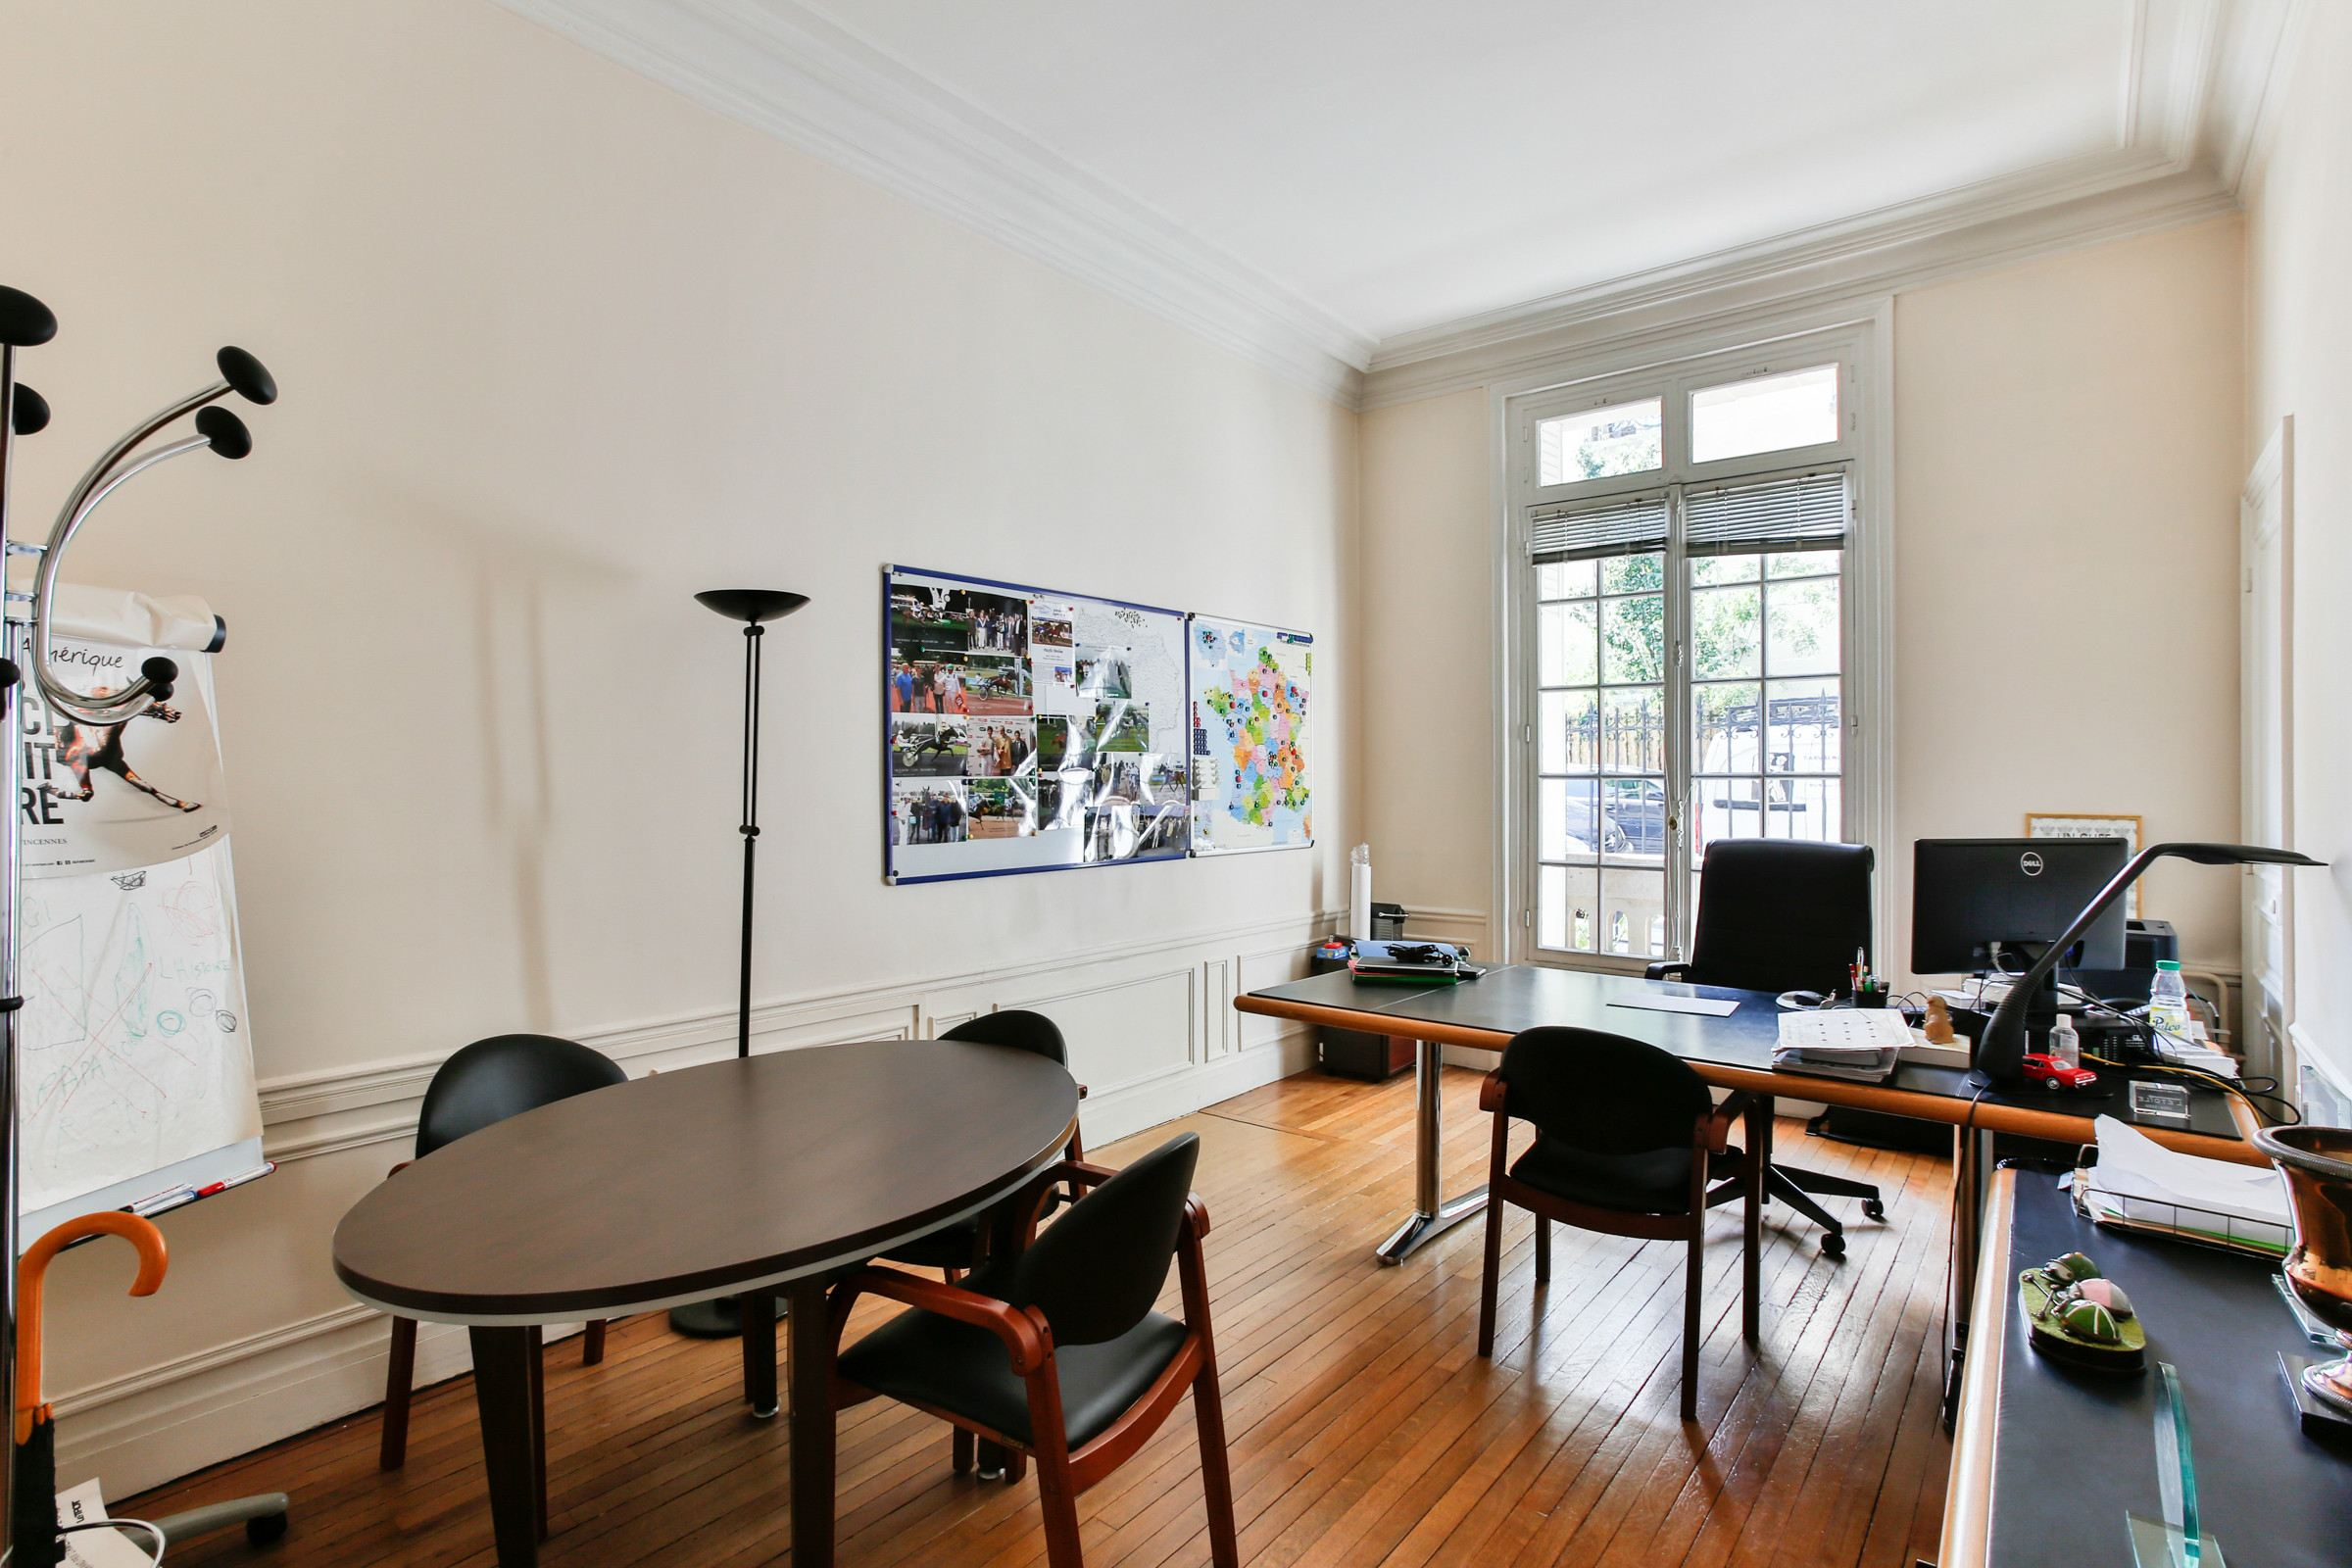 Property For Sale at Paris 16 - Faisanderie. Apartment. Parquet floor, moldings, fireplaces.